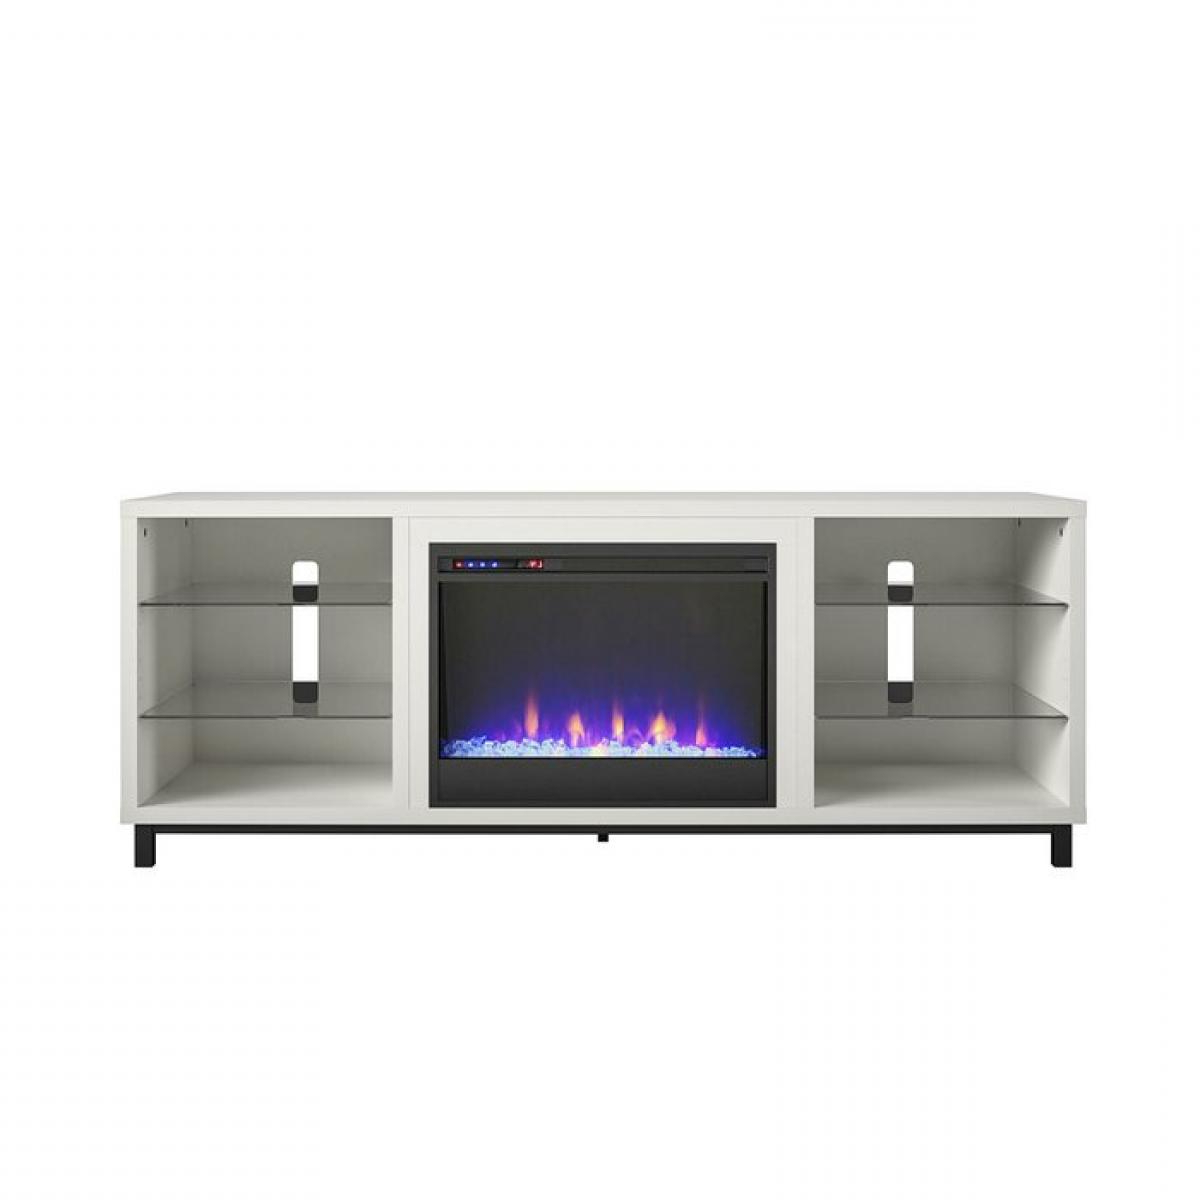 """Well Liked White Westchester Tv Stand For Tvs Up To 65"""" With Electric With Dallas Tv Stands For Tvs Up To 65"""" (View 7 of 20)"""